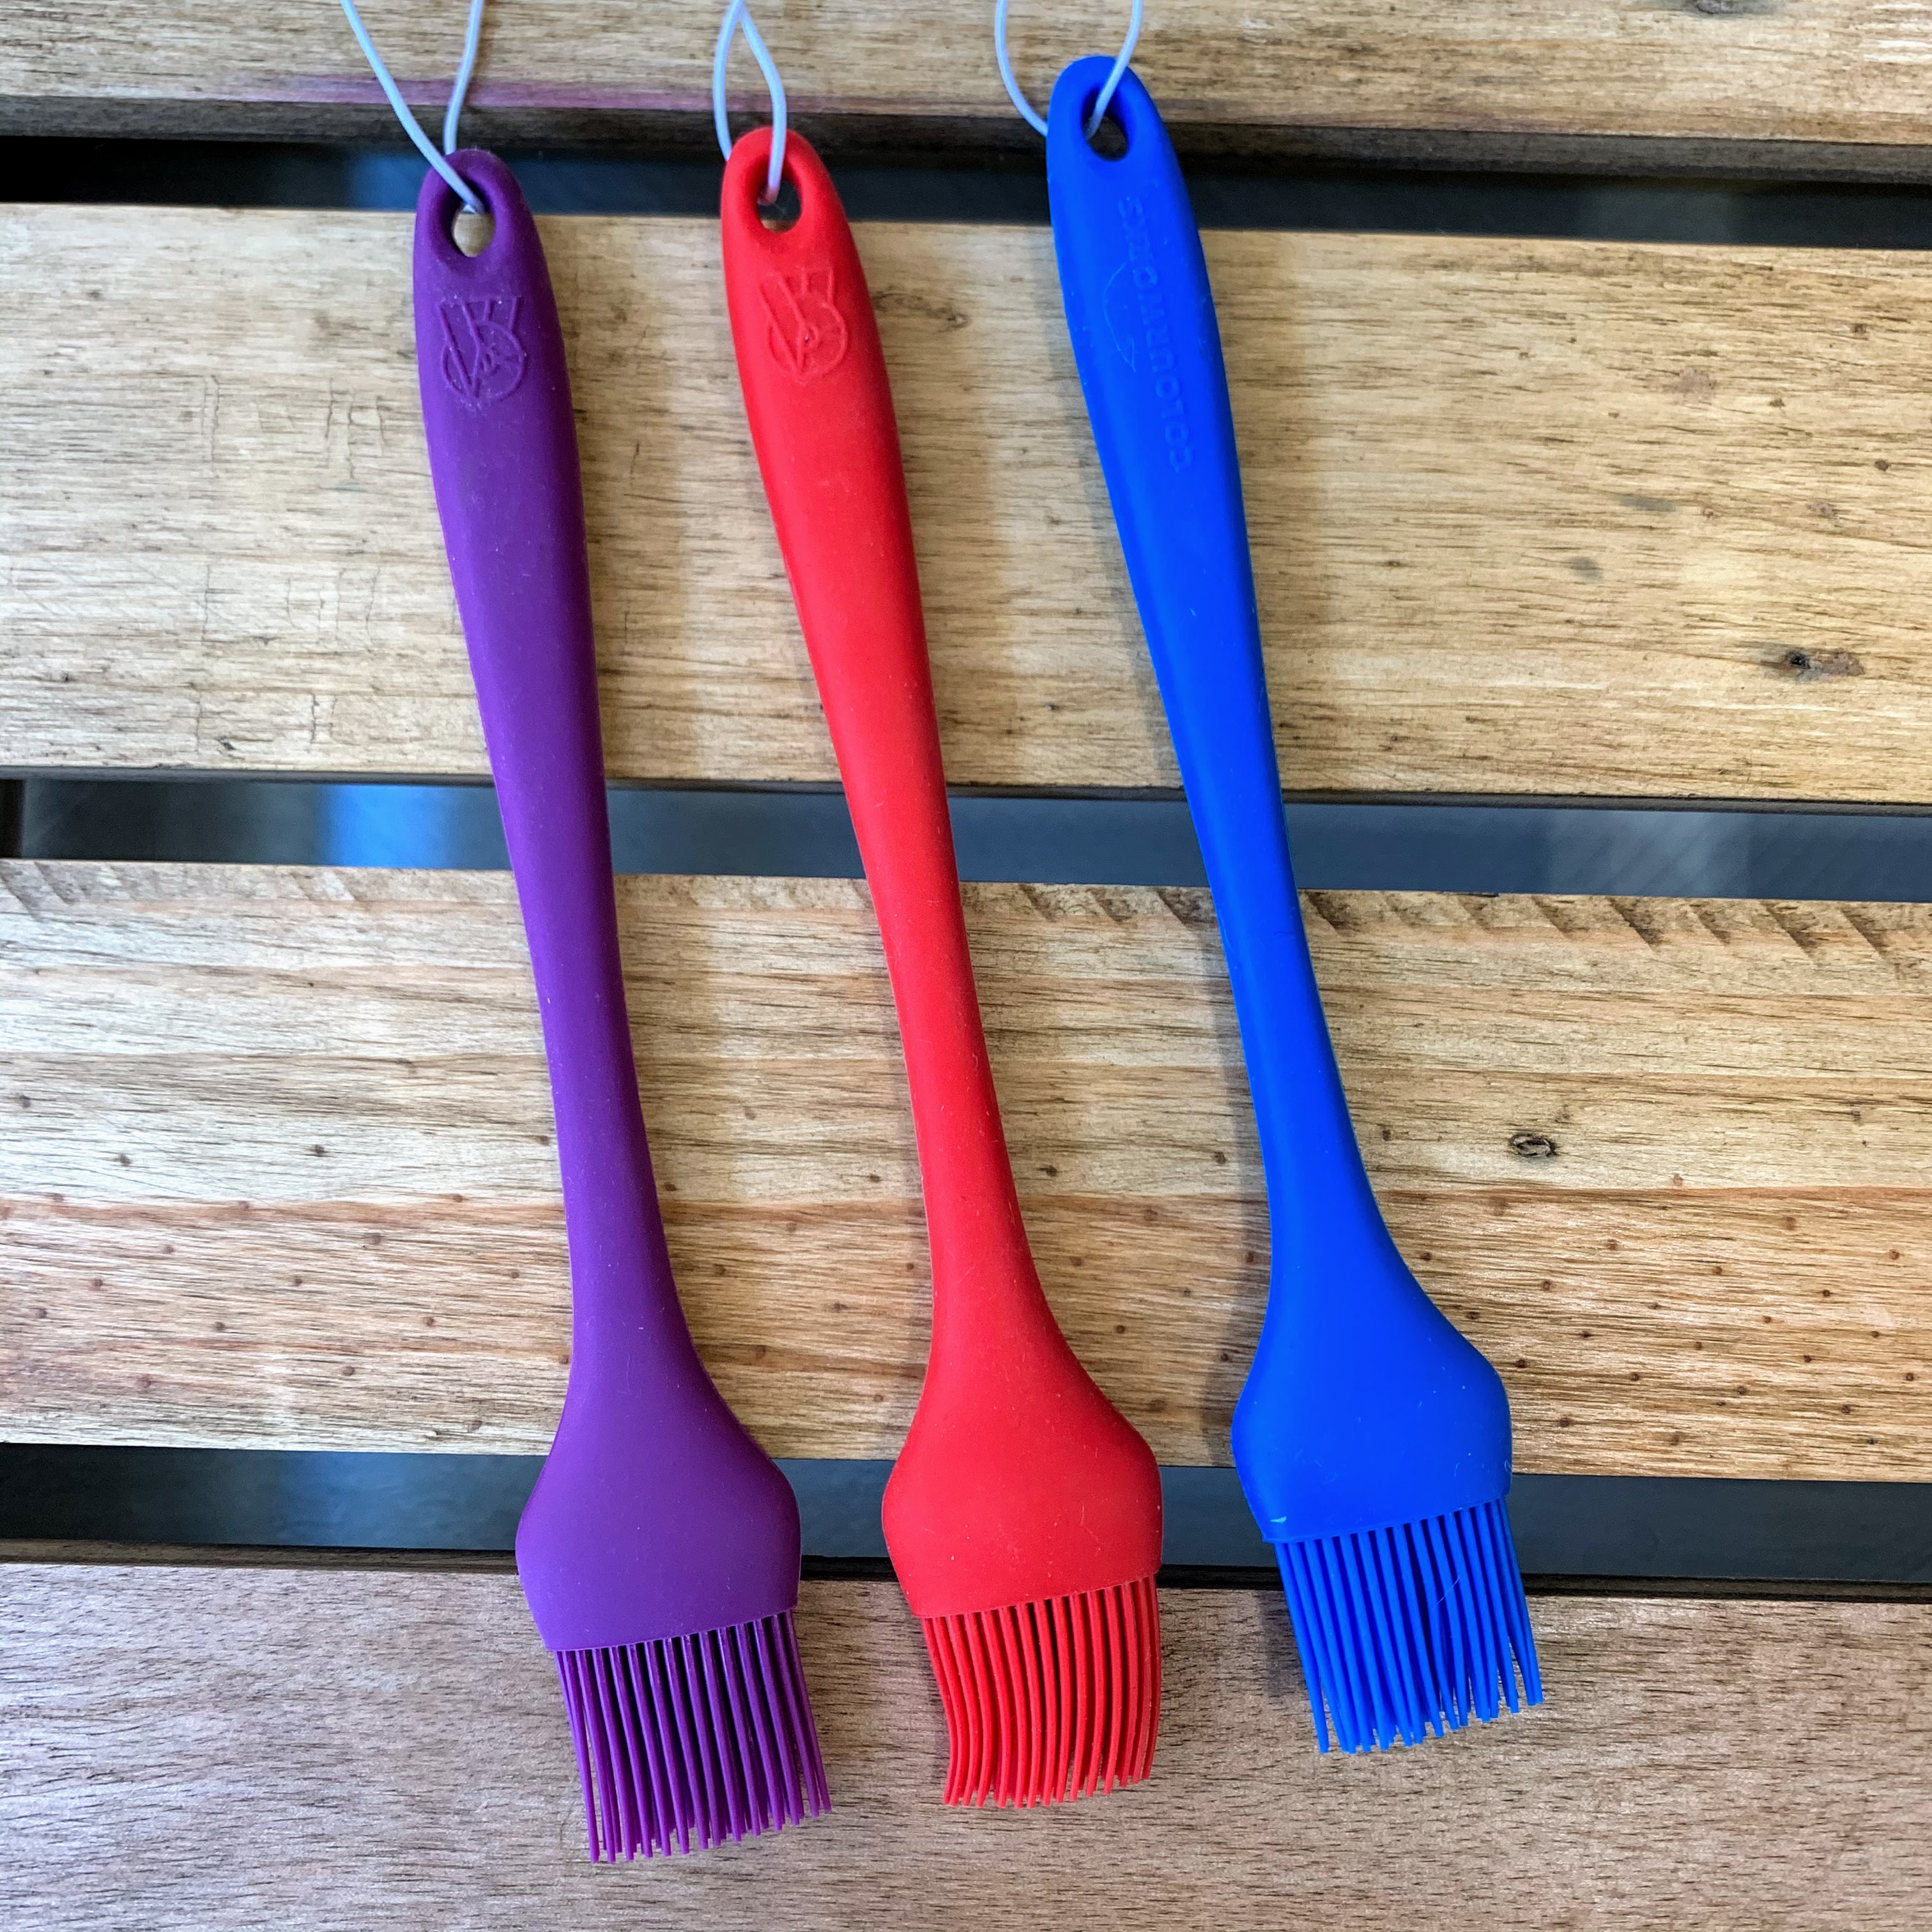 Mini Silicone Pastry Brushes